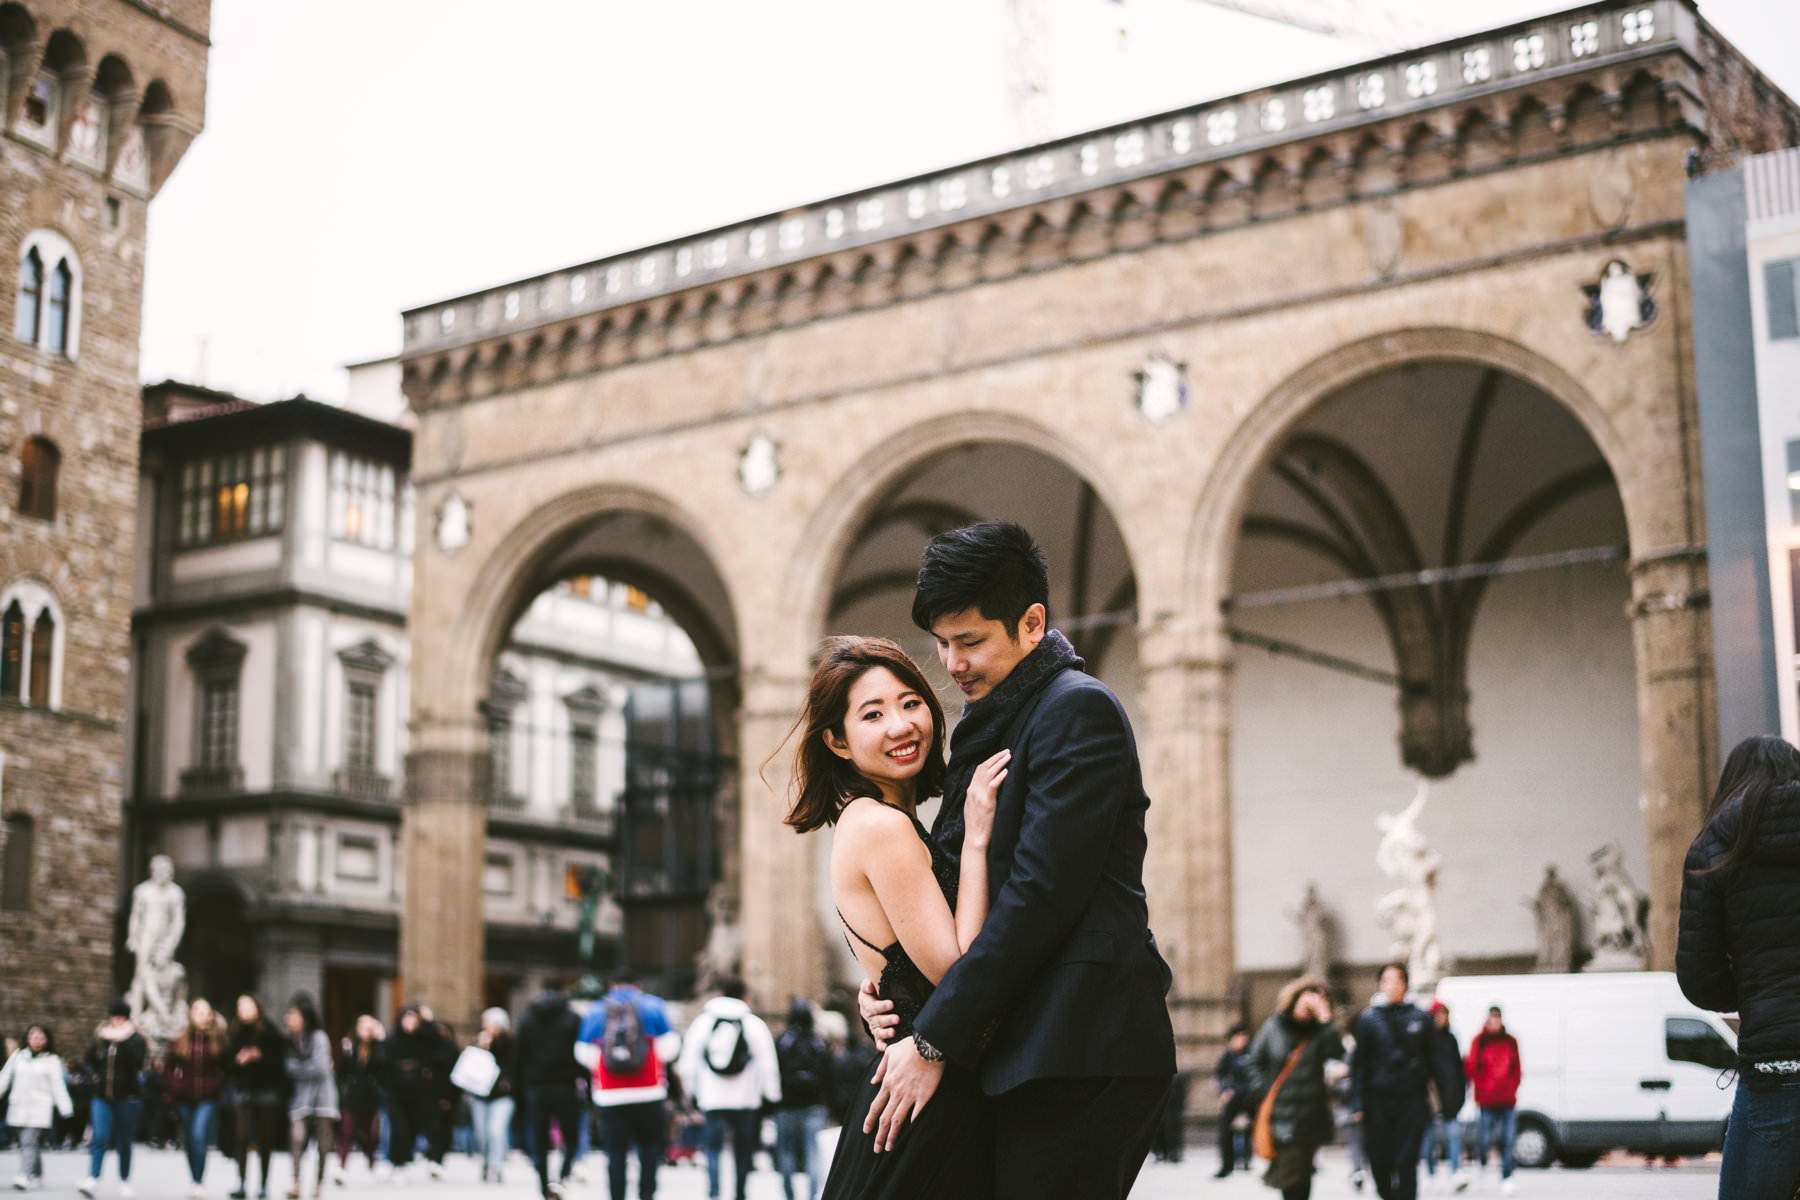 Couple photo shoot in Piazza della Signoria near Loggia dei Lanzi and Palazzo Vecchio in Florence. Photo by engagement photographer in Tuscany Gabriele Fani.